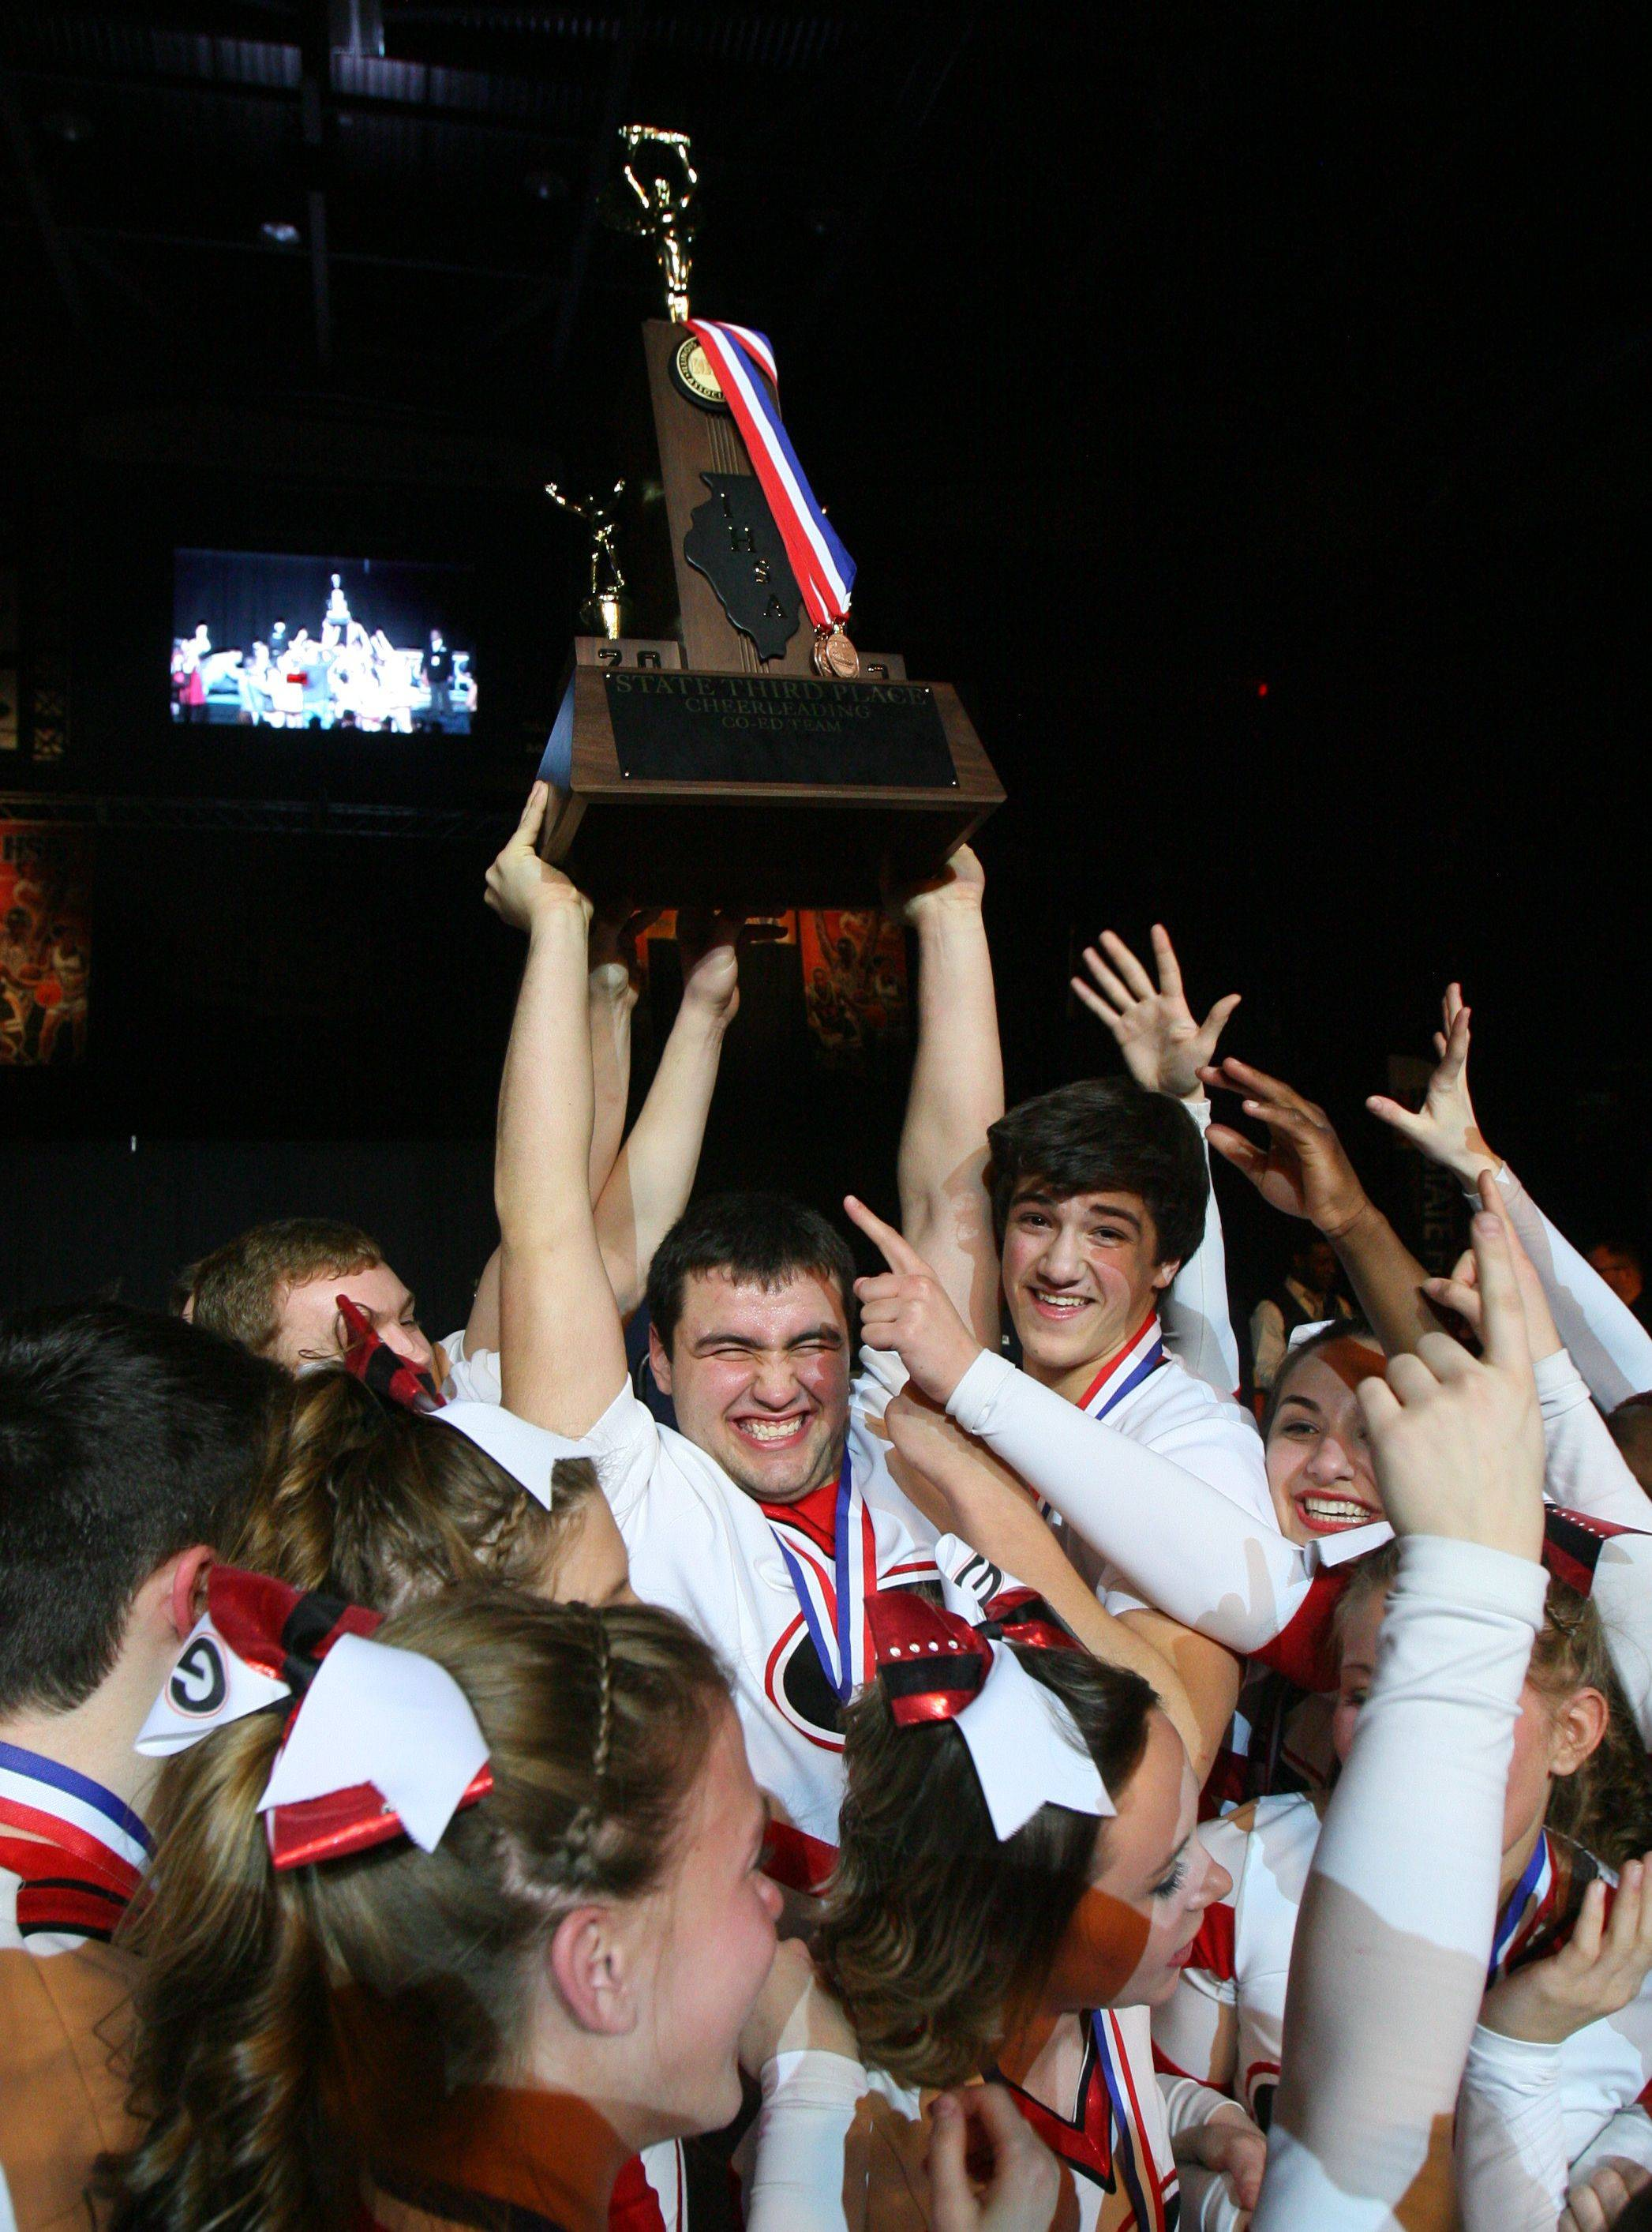 Grant High School's large coed team celebrates after winning third place in the IHSA Competitive Cheerleading finals on Saturday at the U.S. Cellular Coliseum in Bloomington.